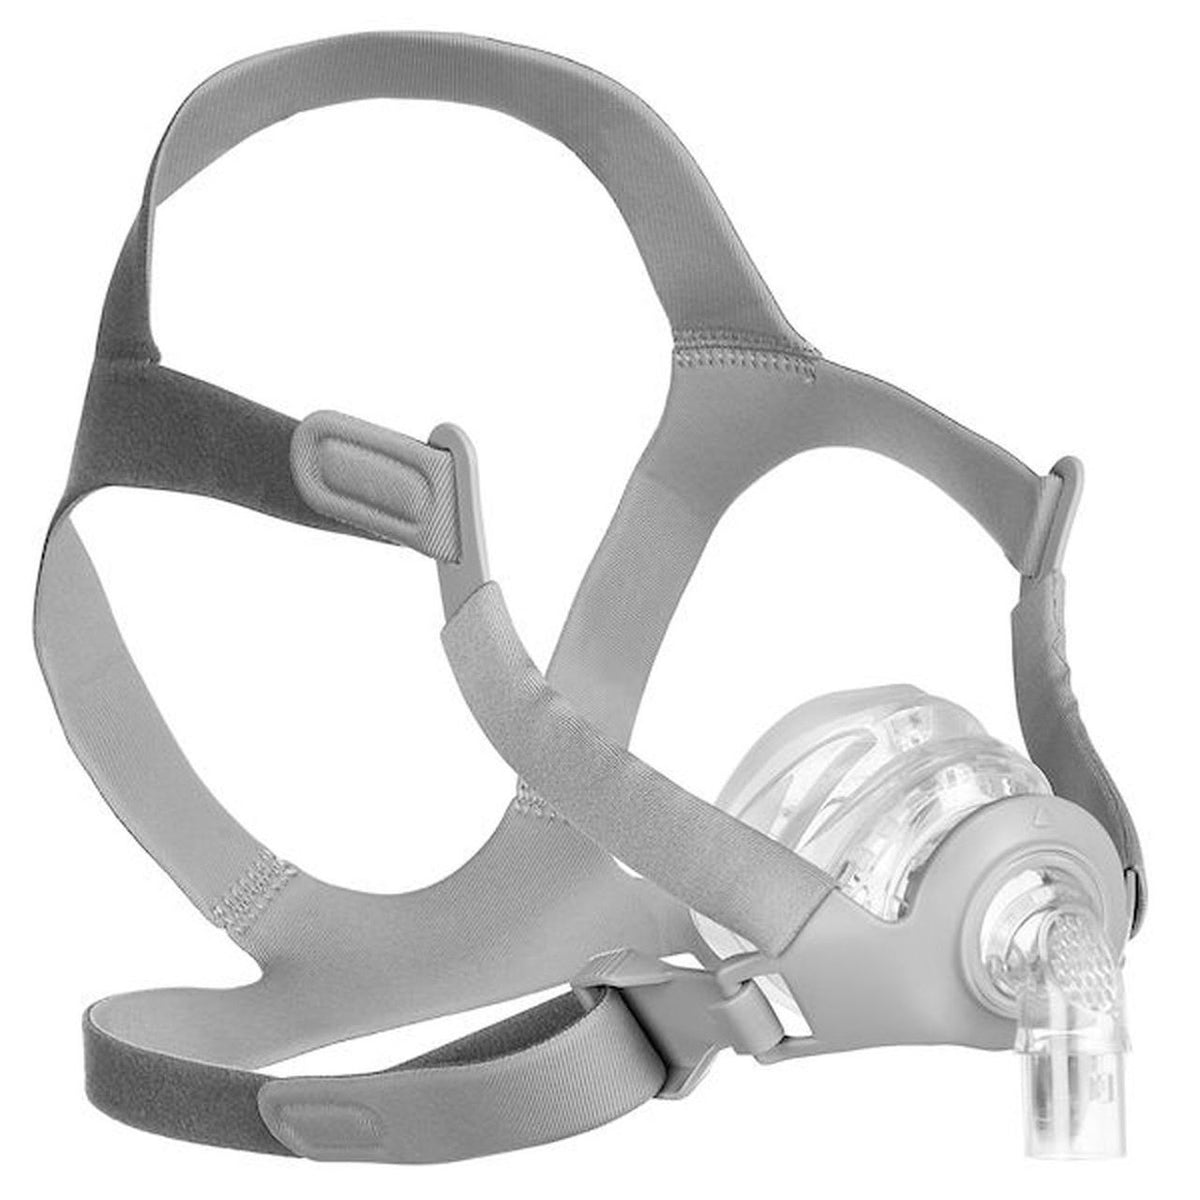 Isometric view of grey headgear and nasal frame cushion for Siesta Nasal Mask by 3B Medical.